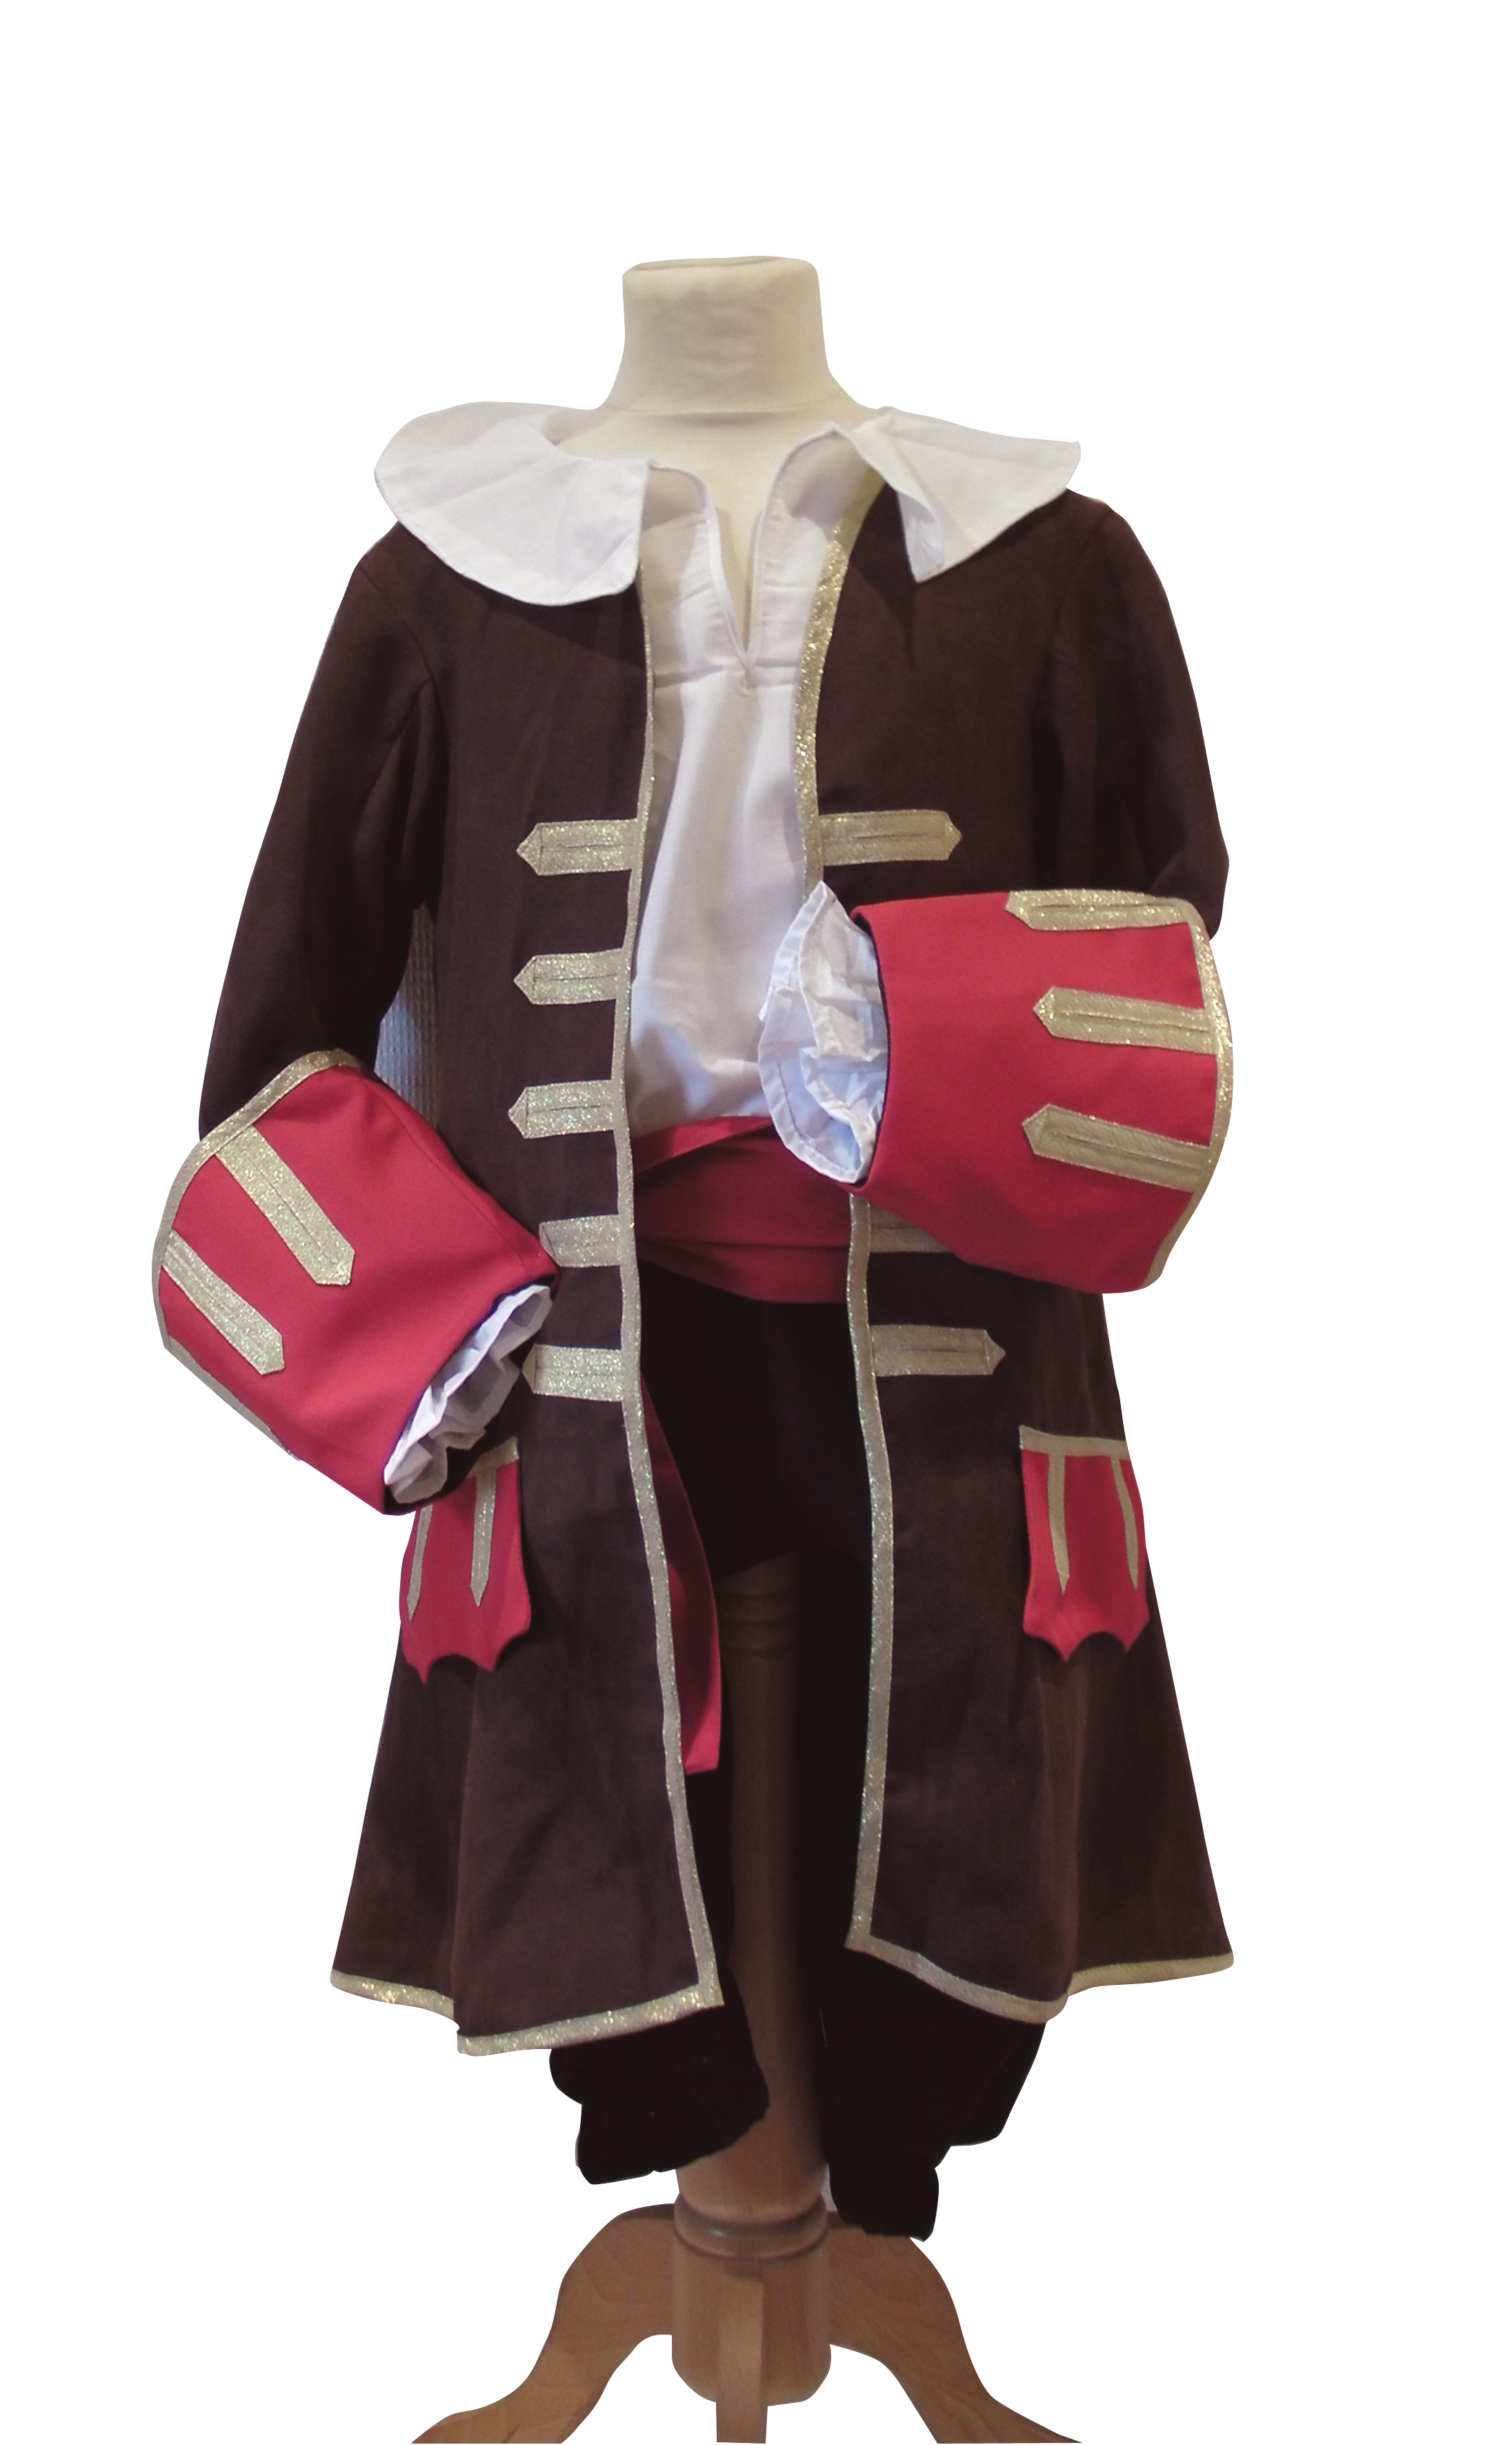 Déguisement costume de pirate